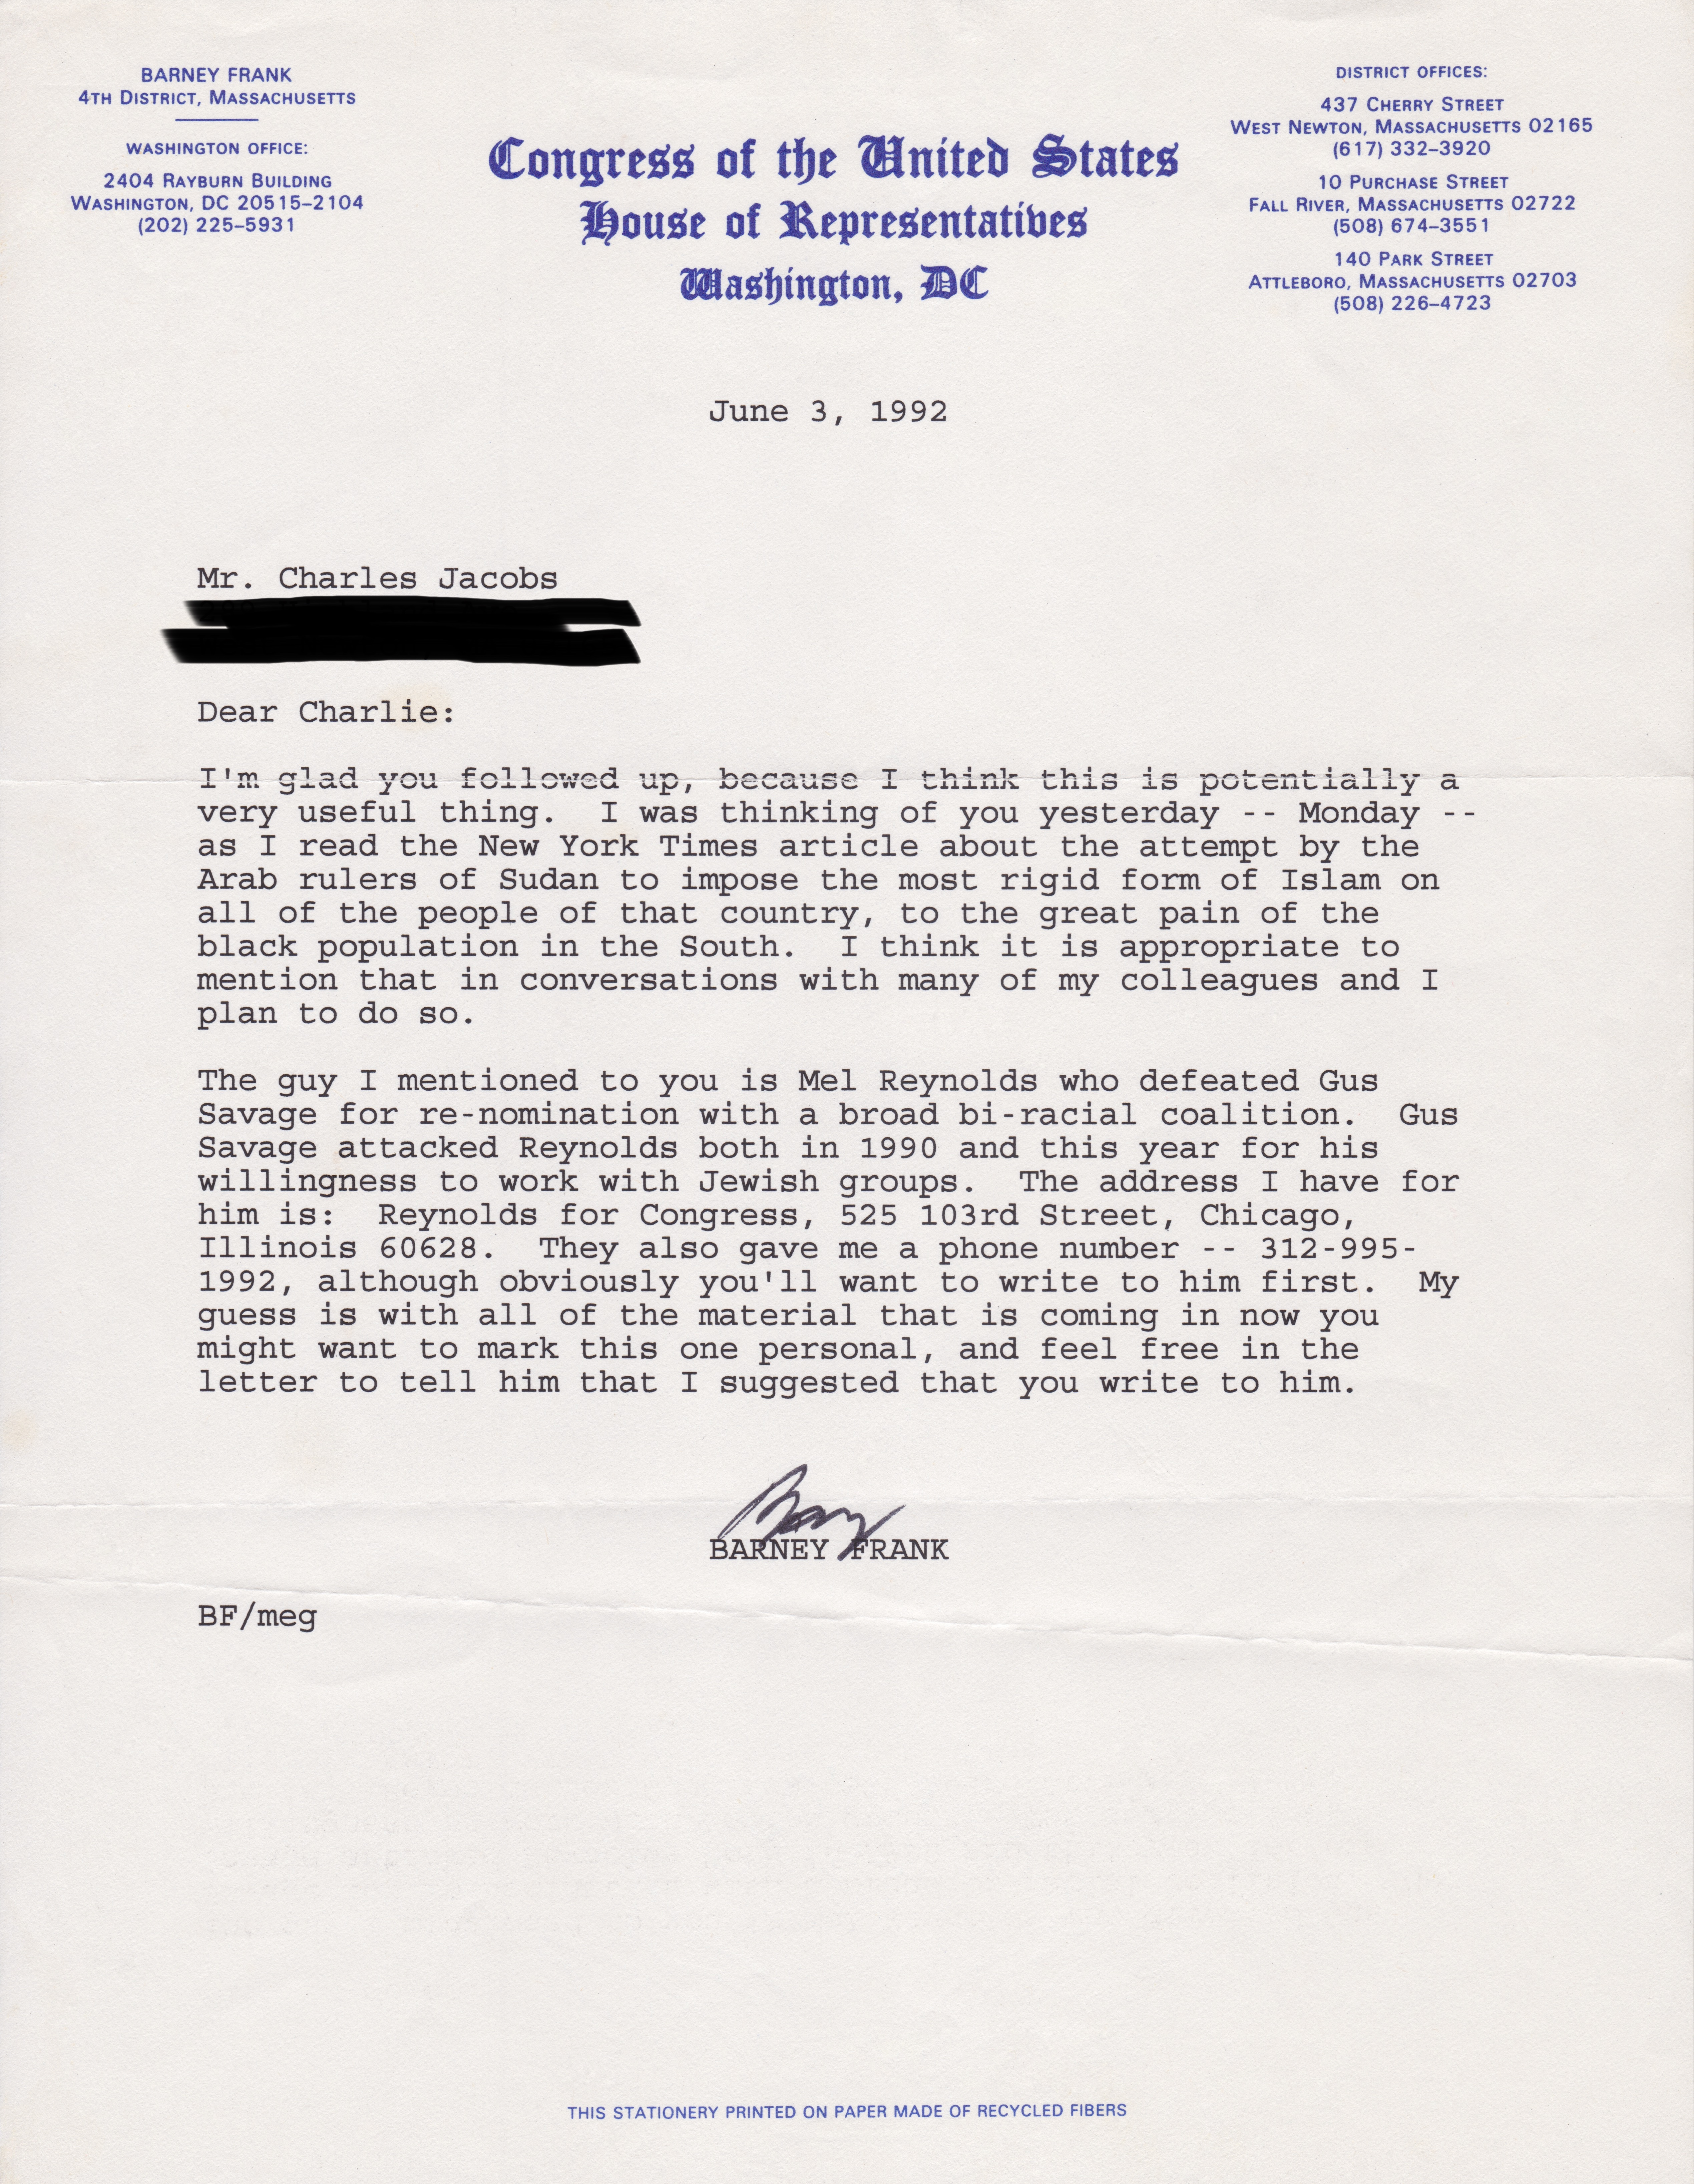 Letter to Dr. Charles Jacobs from Representative Barney Frank (June 3, 1992)